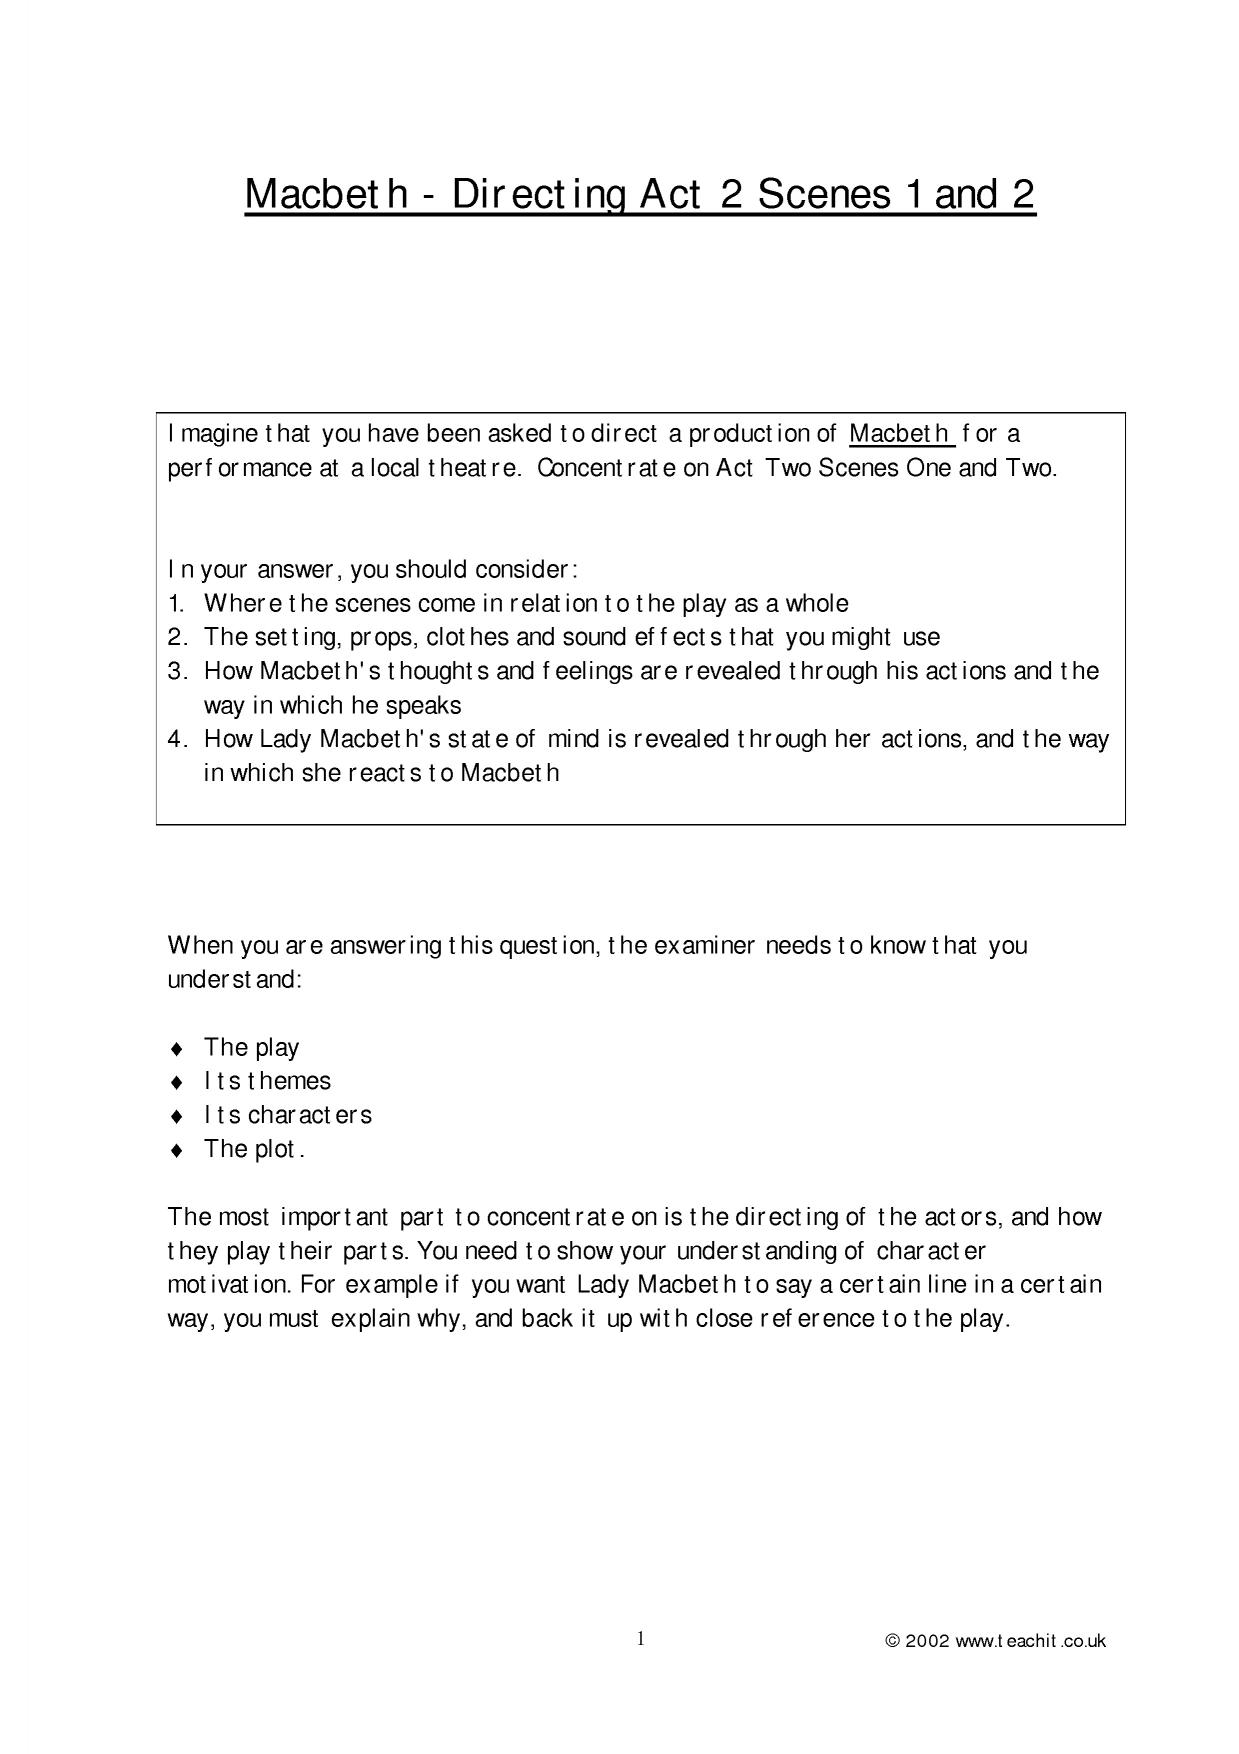 Essay about legalization of prostitution